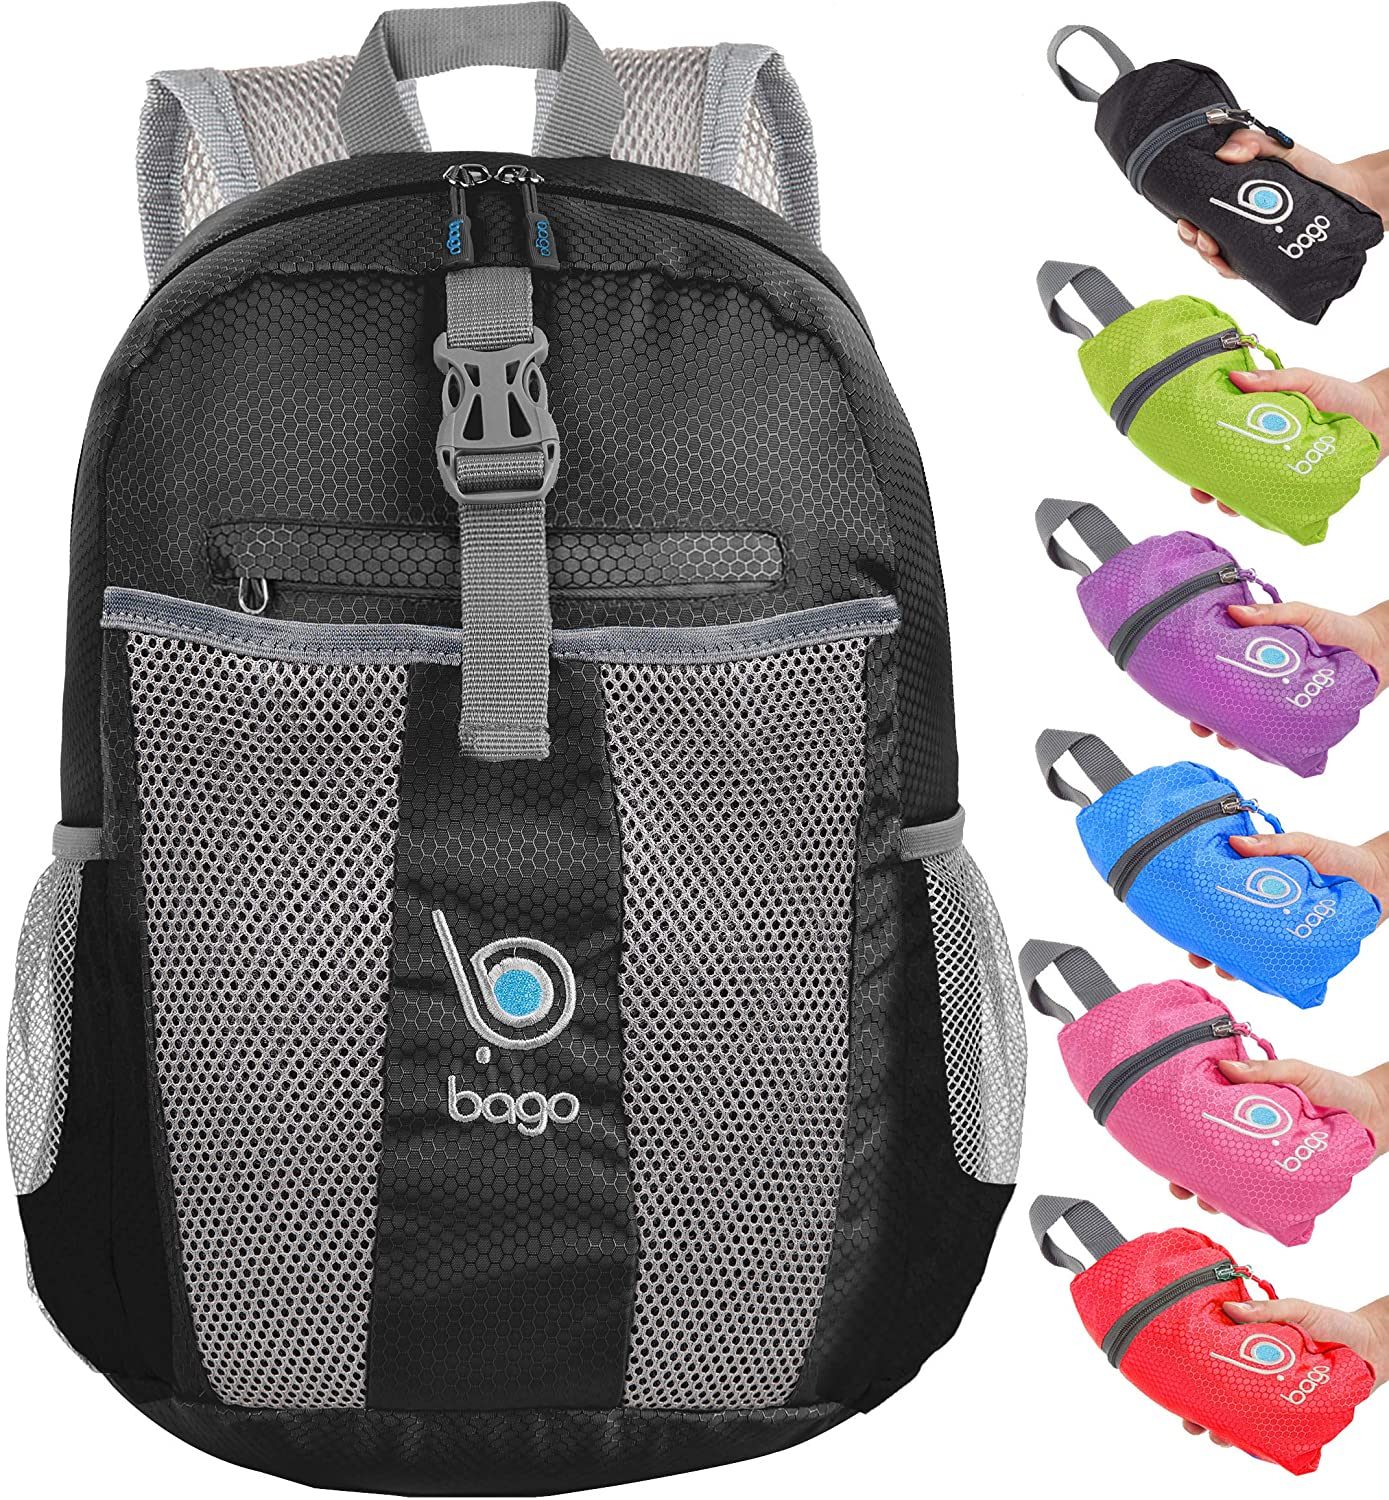 3252791f6 Amazon.com: bago 25L Lightweight Packable Backpack - Water Resistant Travel  and Hiking Daypack - Foldable and Handy for Camping Outdoor Sports (Black):  ...